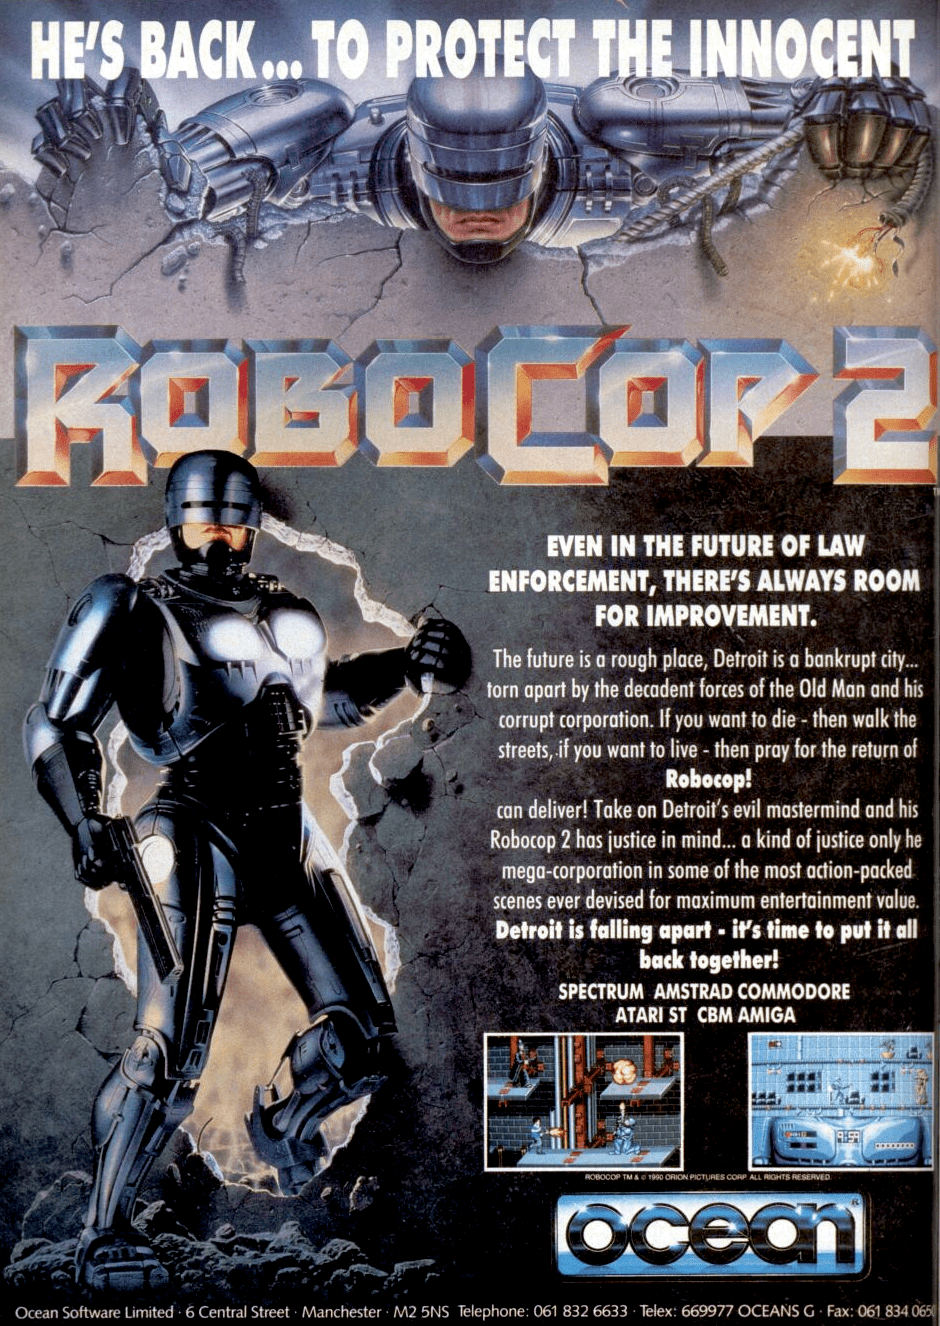 Image For Post | **Description**    RoboCop 2 is based on the 1990 film of the same name, in which a Detroit cyborg cop known as RoboCop must stop a drug distributor, Cain, from spreading a new drug known as Nuke. The Game Boy and Nintendo Entertainment System (NES) versions are primarily shoot 'em up games.[4] They differ from the Amiga, Amstrad GX4000 and Commodore 64 versions, which also differ from each other.[4] In addition to side-scrolling platform levels, the Amiga and ZX Spectrum versions include other levels consisting of first-person shooting galleries – an aspect from the original RoboCop game[5] – and a puzzle game in which the player must help RoboCop remember his memories by arranging certain electronic chips.  **Development and release**   The Amiga and Atari ST versions were developed by Special FX and published by Ocean Software, which also developed the NES and Game Boy versions. Programming of the Amiga version began months before the film's release. As a guide, the Special FX development team was given a pre-release version of the film that excluded several scenes. The team was also given a preliminary script of the film and pictures of the characters. Audio samples from the film, including RoboCop's gunfire and footsteps, were added into the Amiga version. The ZX Spectrum and Amiga versions include digitized scenes from the film.  In the United Kingdom, Ocean released the Amiga version in November 1990, followed by the release of the Amstrad GX4000, Game Boy and Atari ST versions the following month. A Nintendo Entertainment System (NES) version had been released in the United States by April 1991. An arcade version, manufactured by Data East, was also released in 1991.  The enemies from Sector 3 can be a reference to Emil Antonowsky's mutation on radioactive liquid from the first movie.   Though never referred to by name, the criminal knocked into a pit of toxic waste has a unique Elvis Presley design identical to Catzo from the film. Earlier 